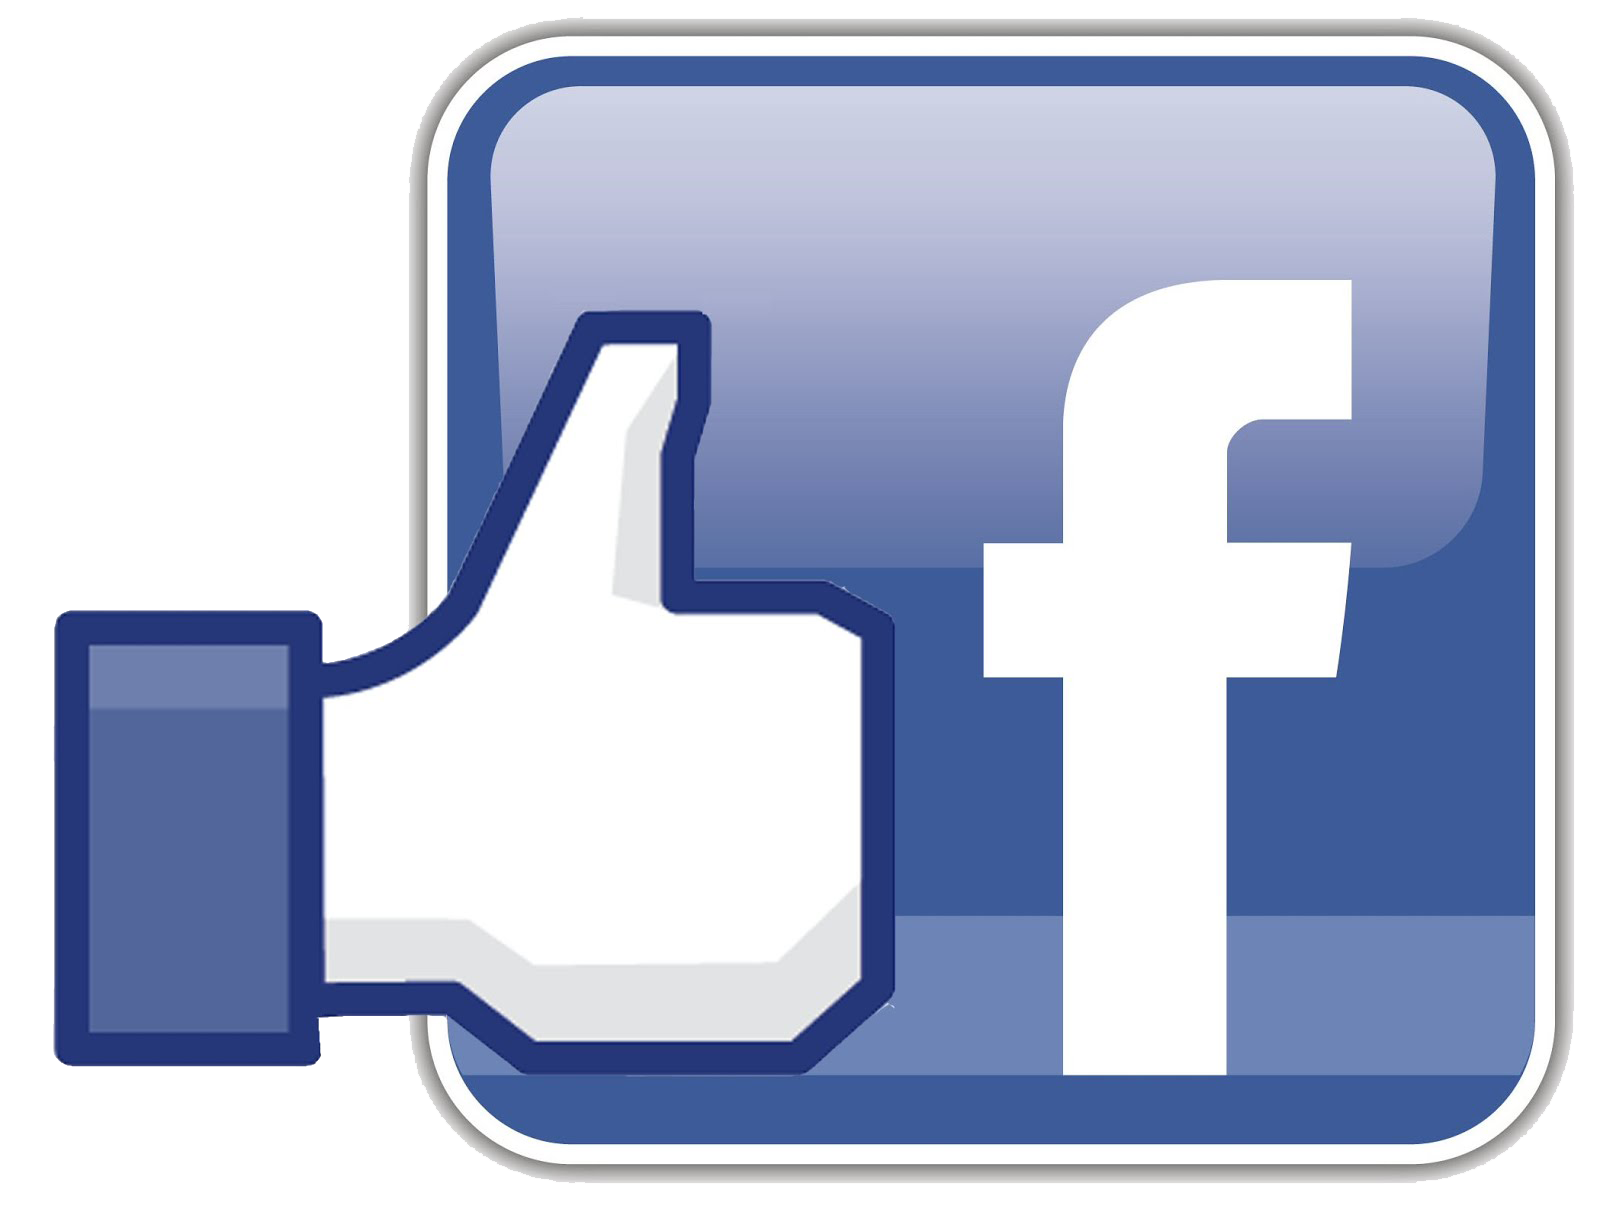 facebook-logo-png-2-0.png